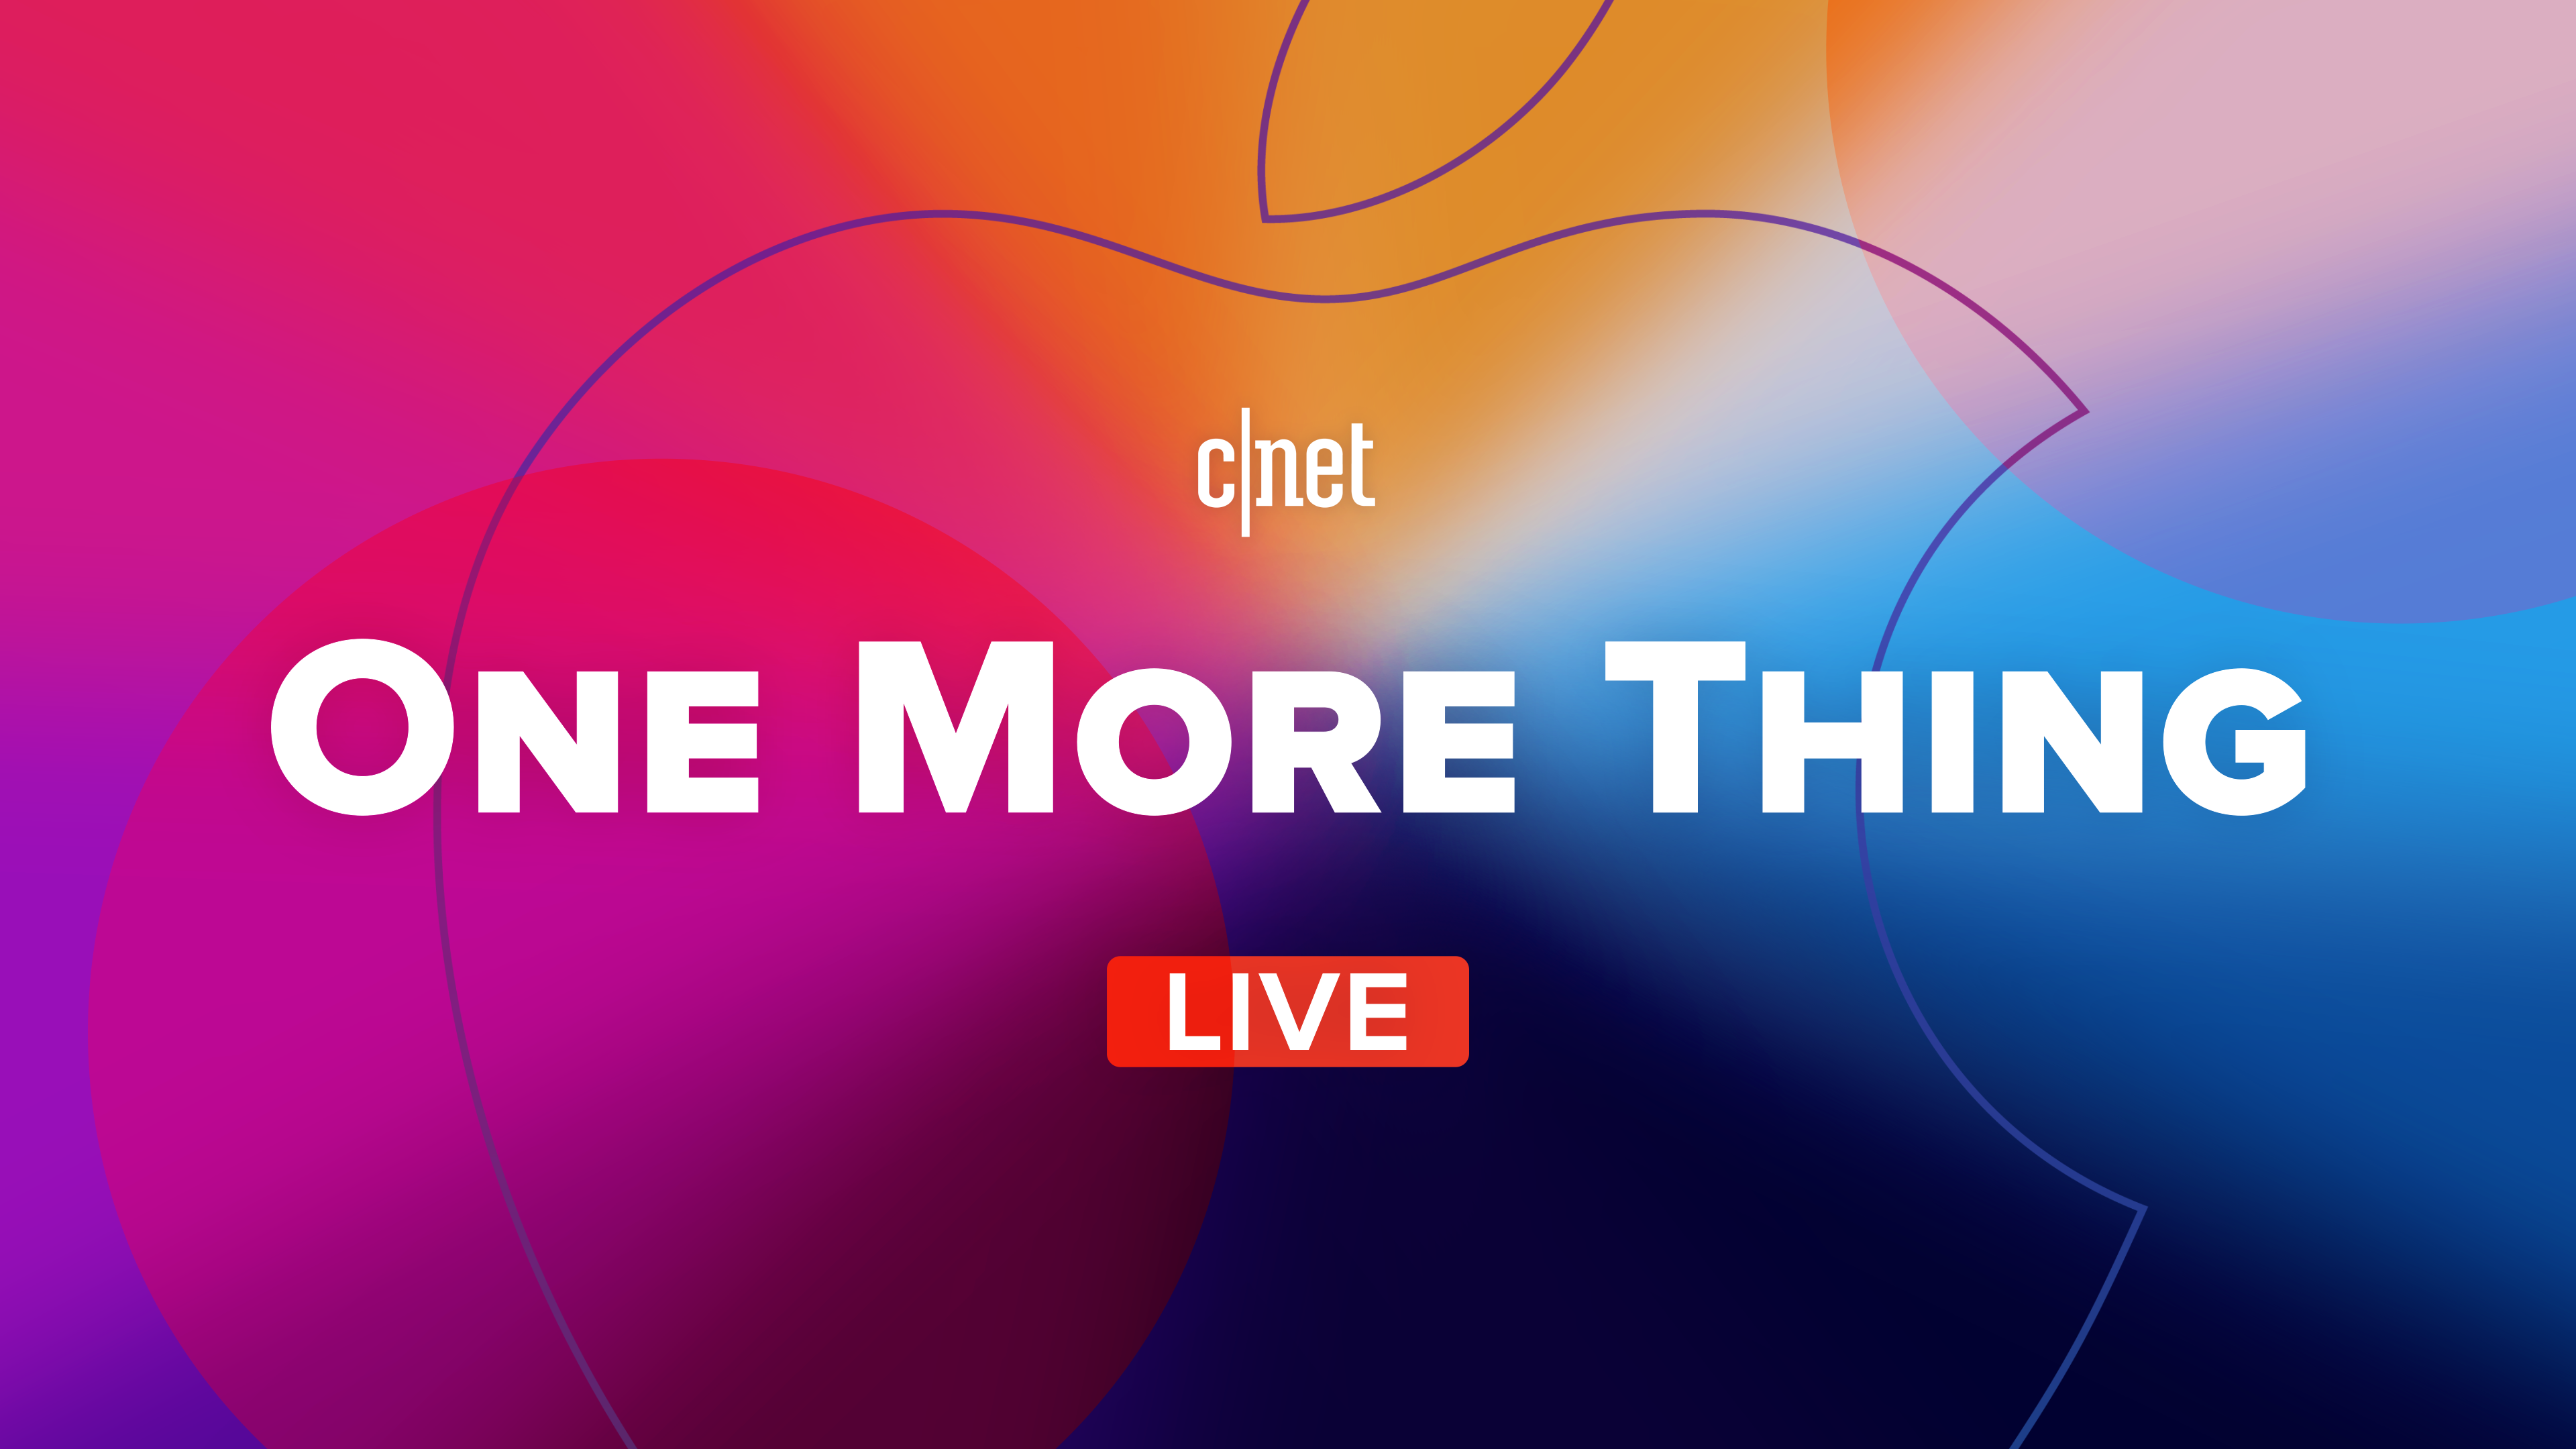 Apple's 'One More Thing' reveal event: CNET watch party live